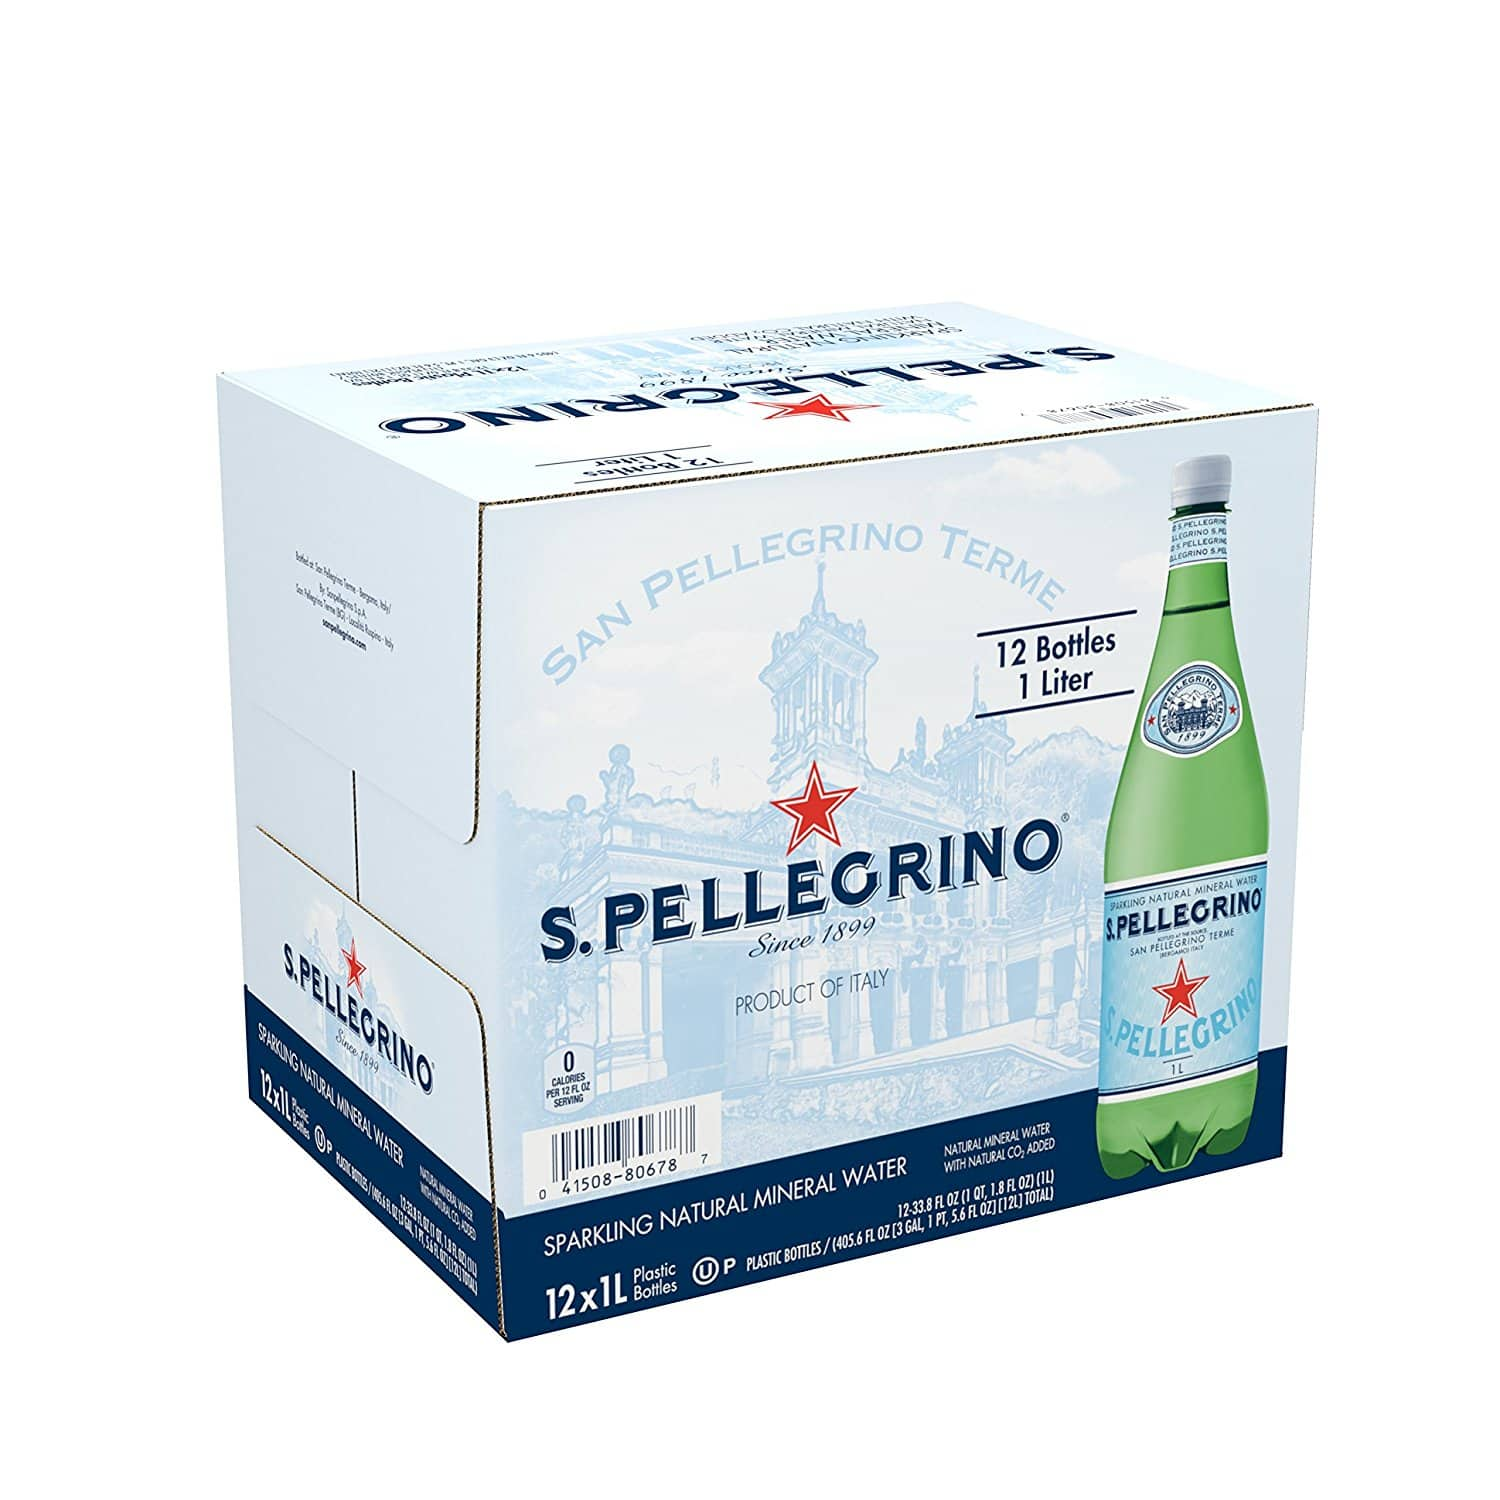 12-Pack 33.8oz San Pellegrino Sparkling Natural Mineral Water $10.48 + Free Shipping